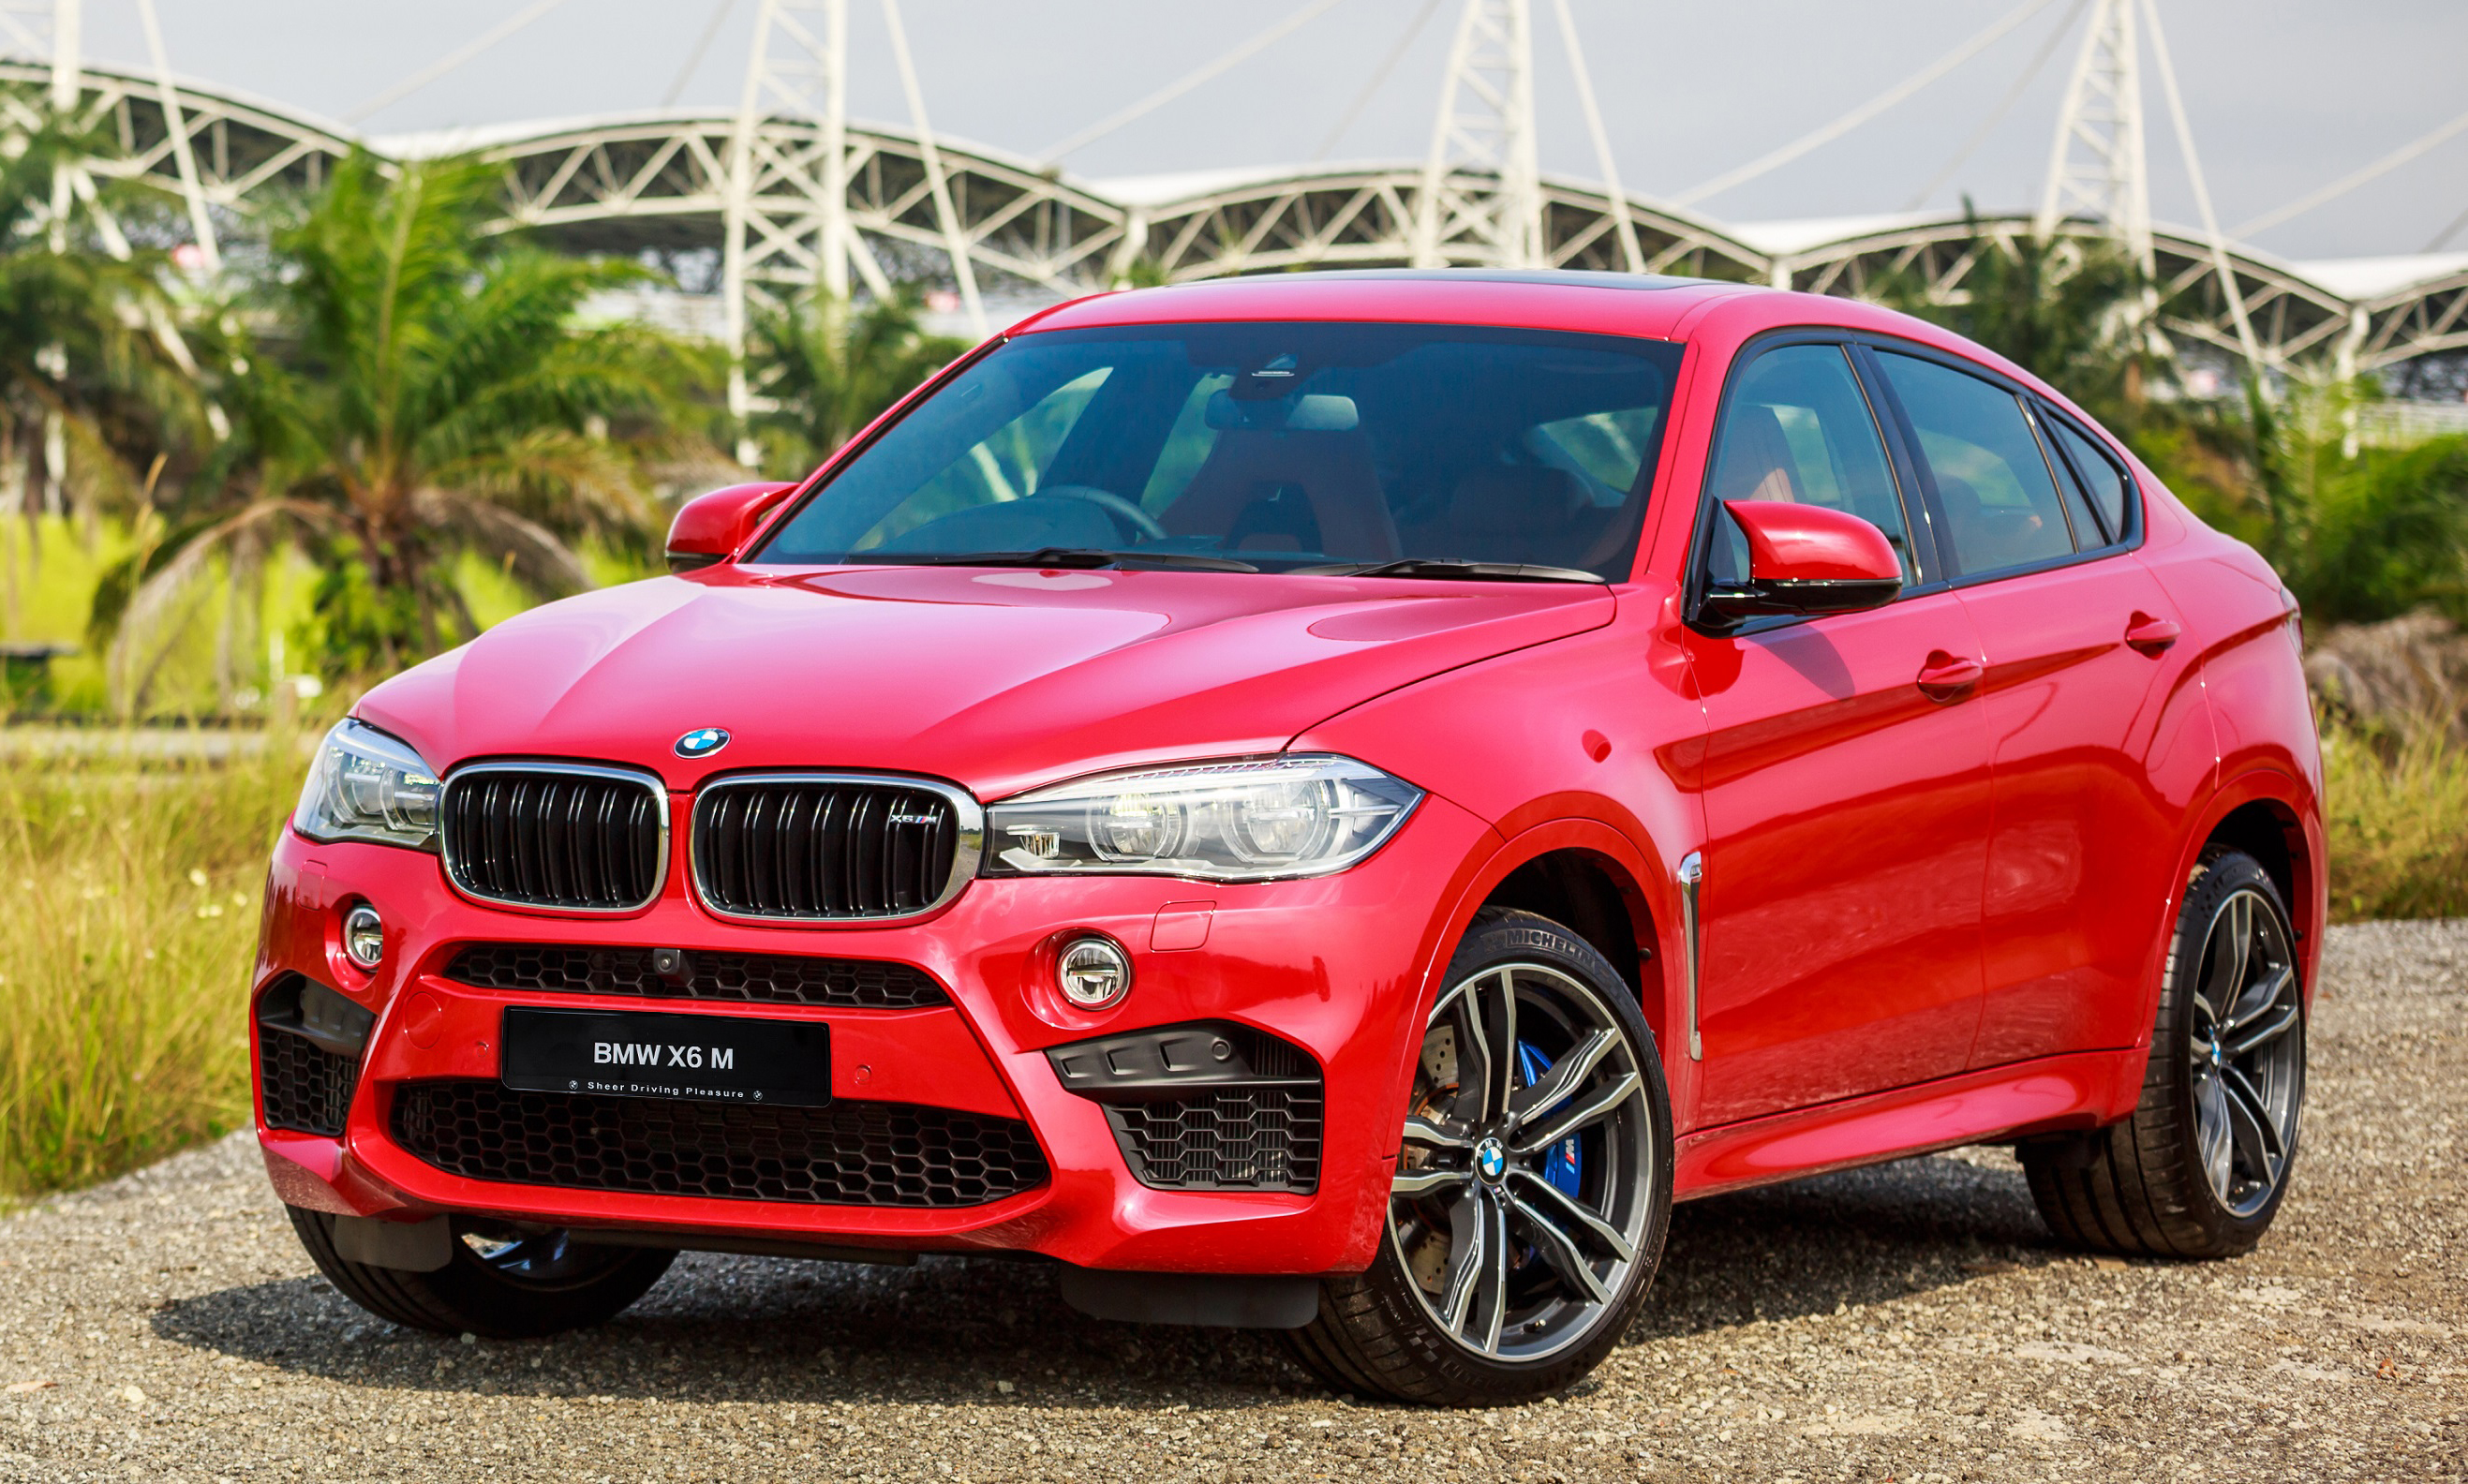 Second Gen Bmw X6 M Launched In Malaysia Rm1 24 Mil